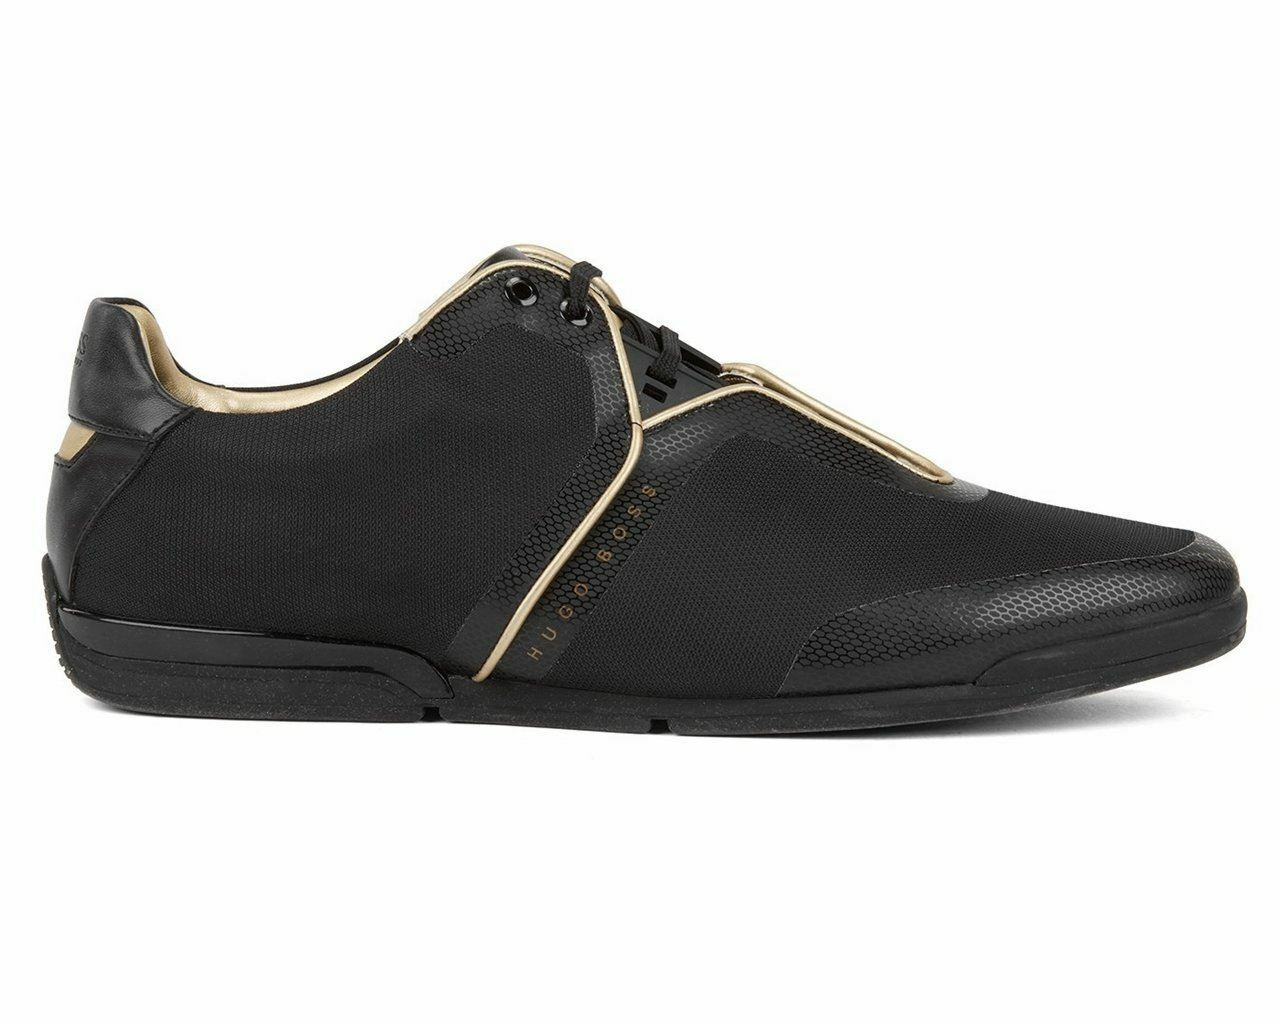 Homme Hugo Boss Saturn Low Tech 2 50397650 002 Baskets chaussures noires